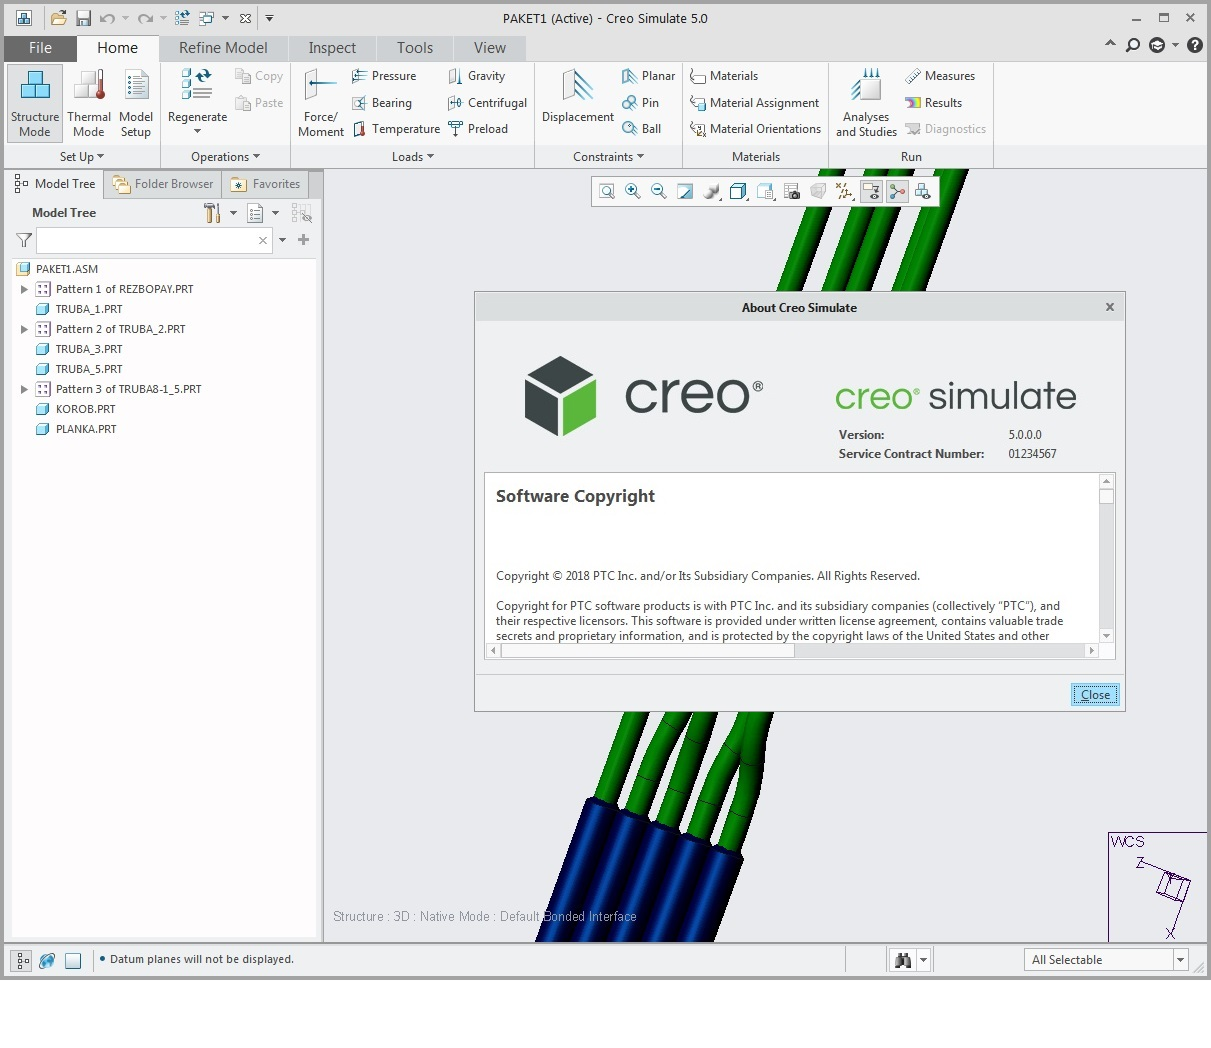 Working with PTC Creo simulate 5.0 F000 x64 full